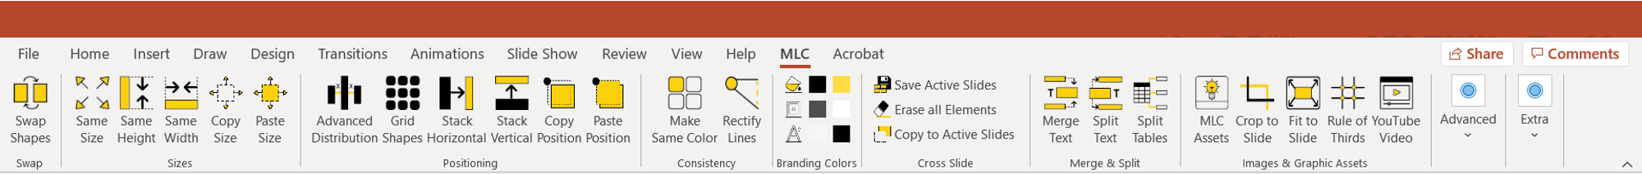 MLC PowerPoint Add-In